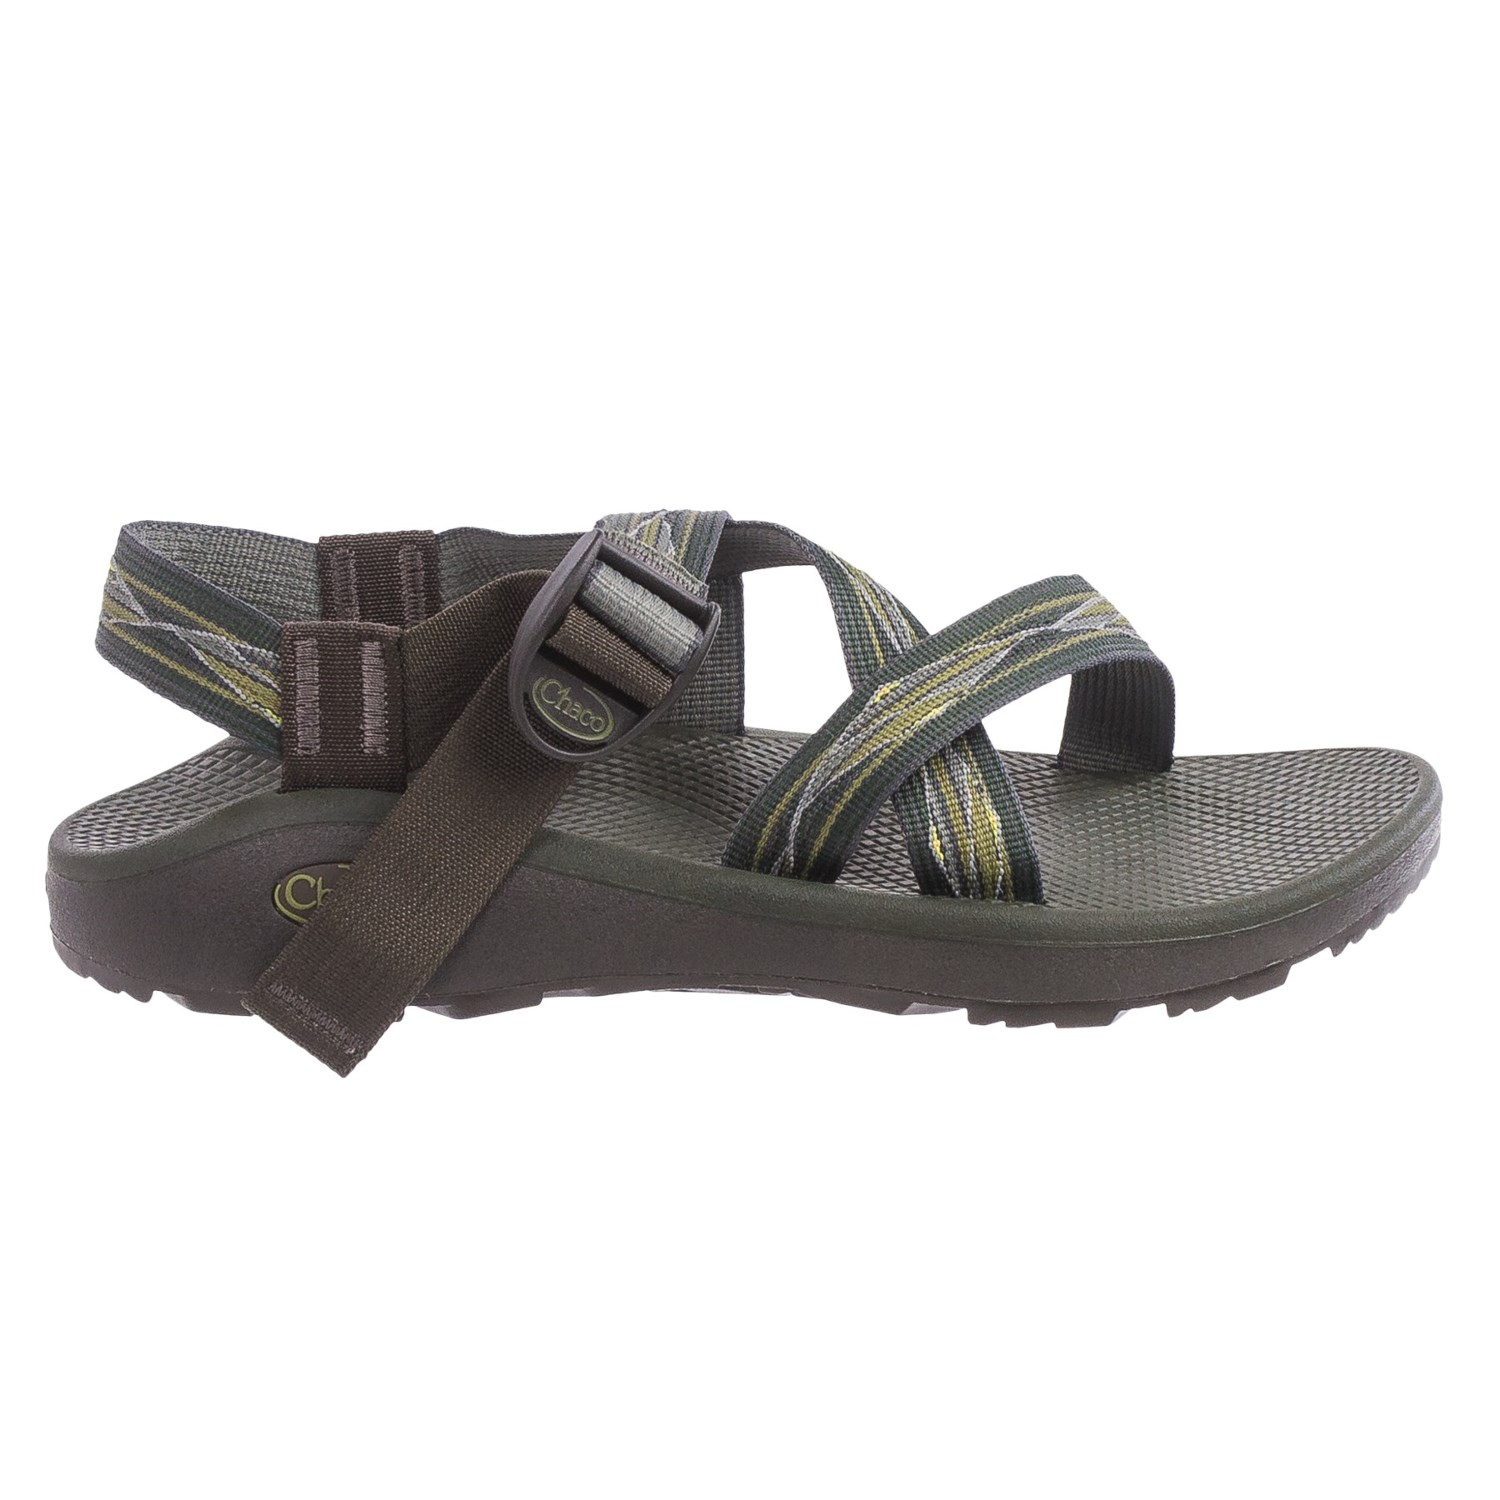 8ed6632446a6 Chaco Z Cloud Sport Sandals (For Men) - Save 45%